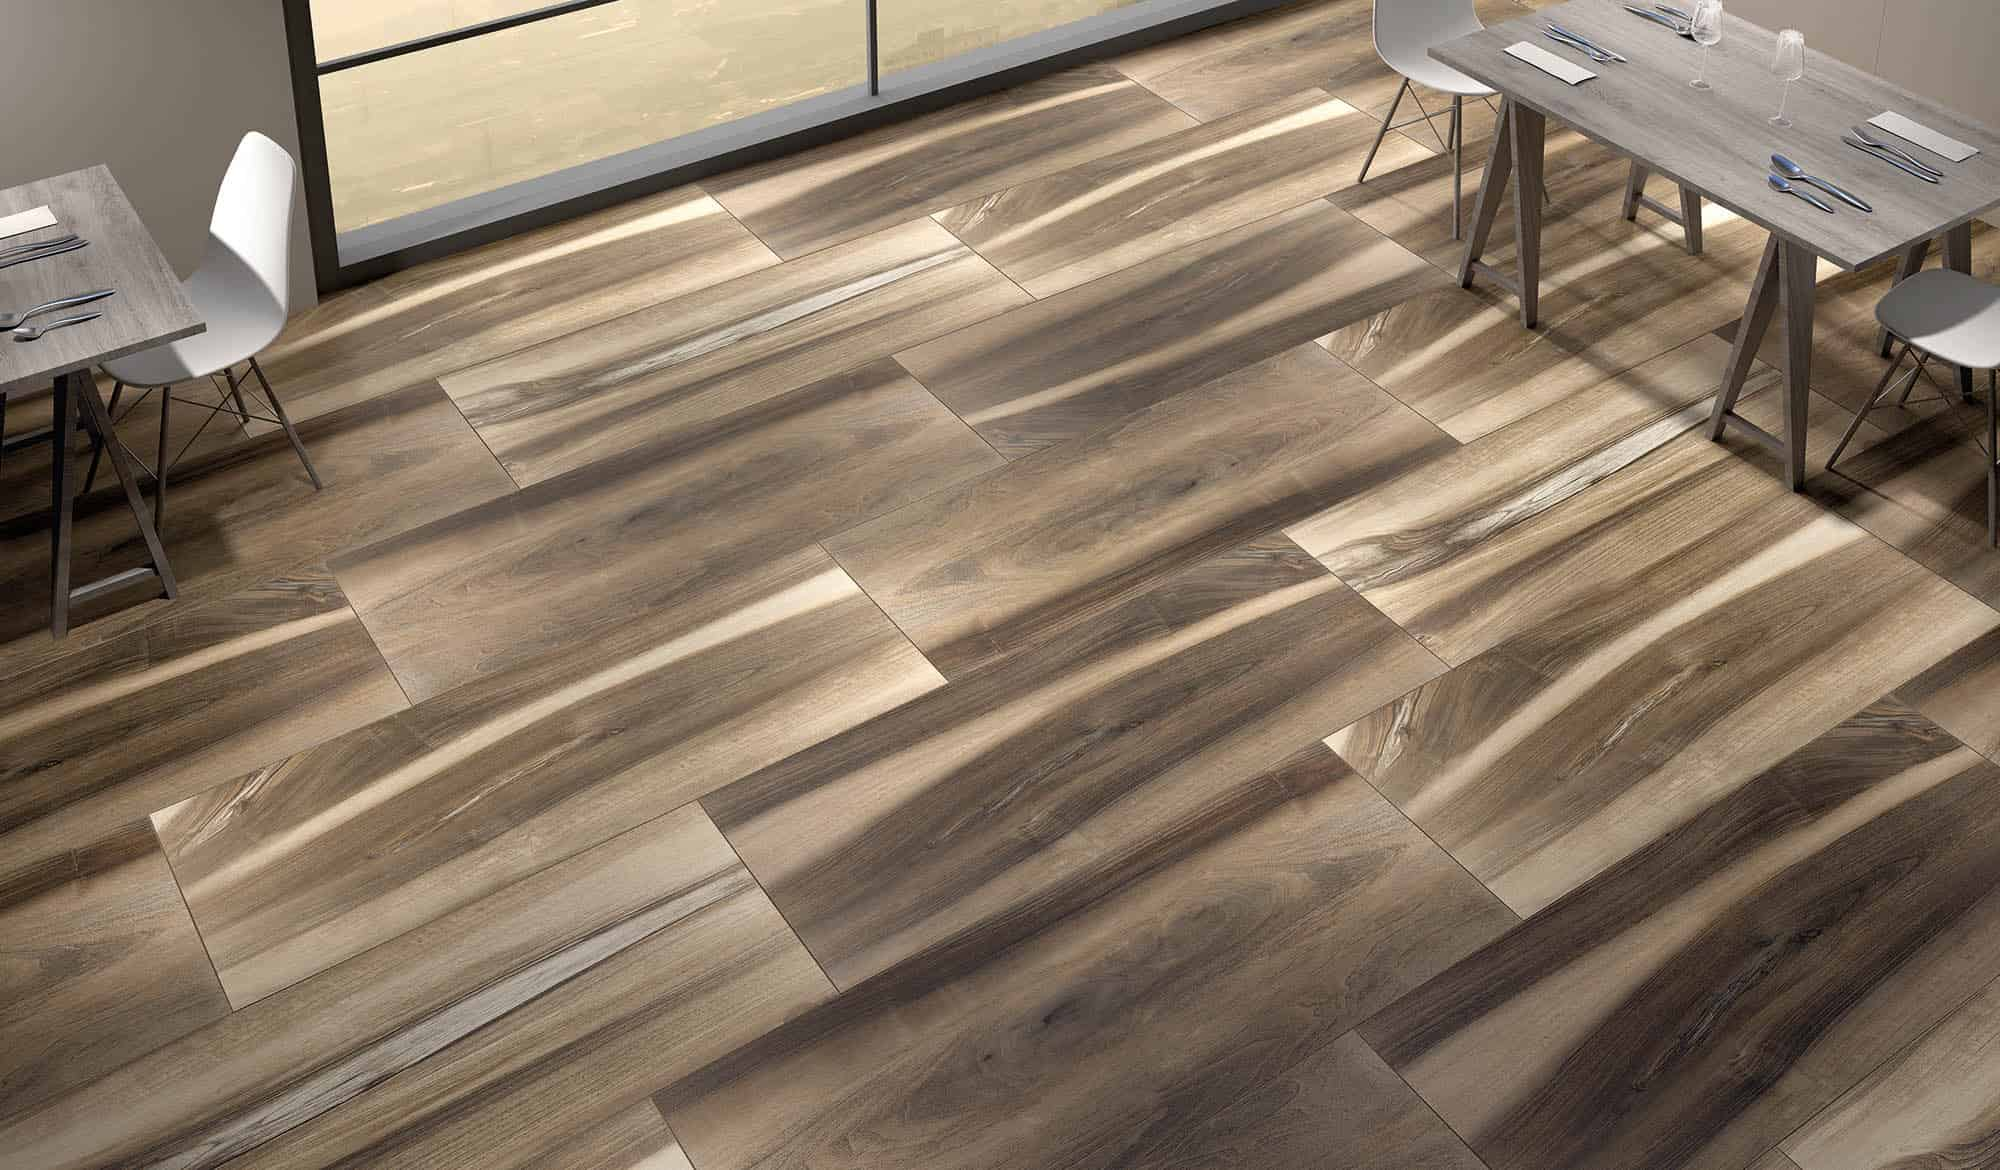 wood tile flooring. View In Gallery Wood Tile Flooring